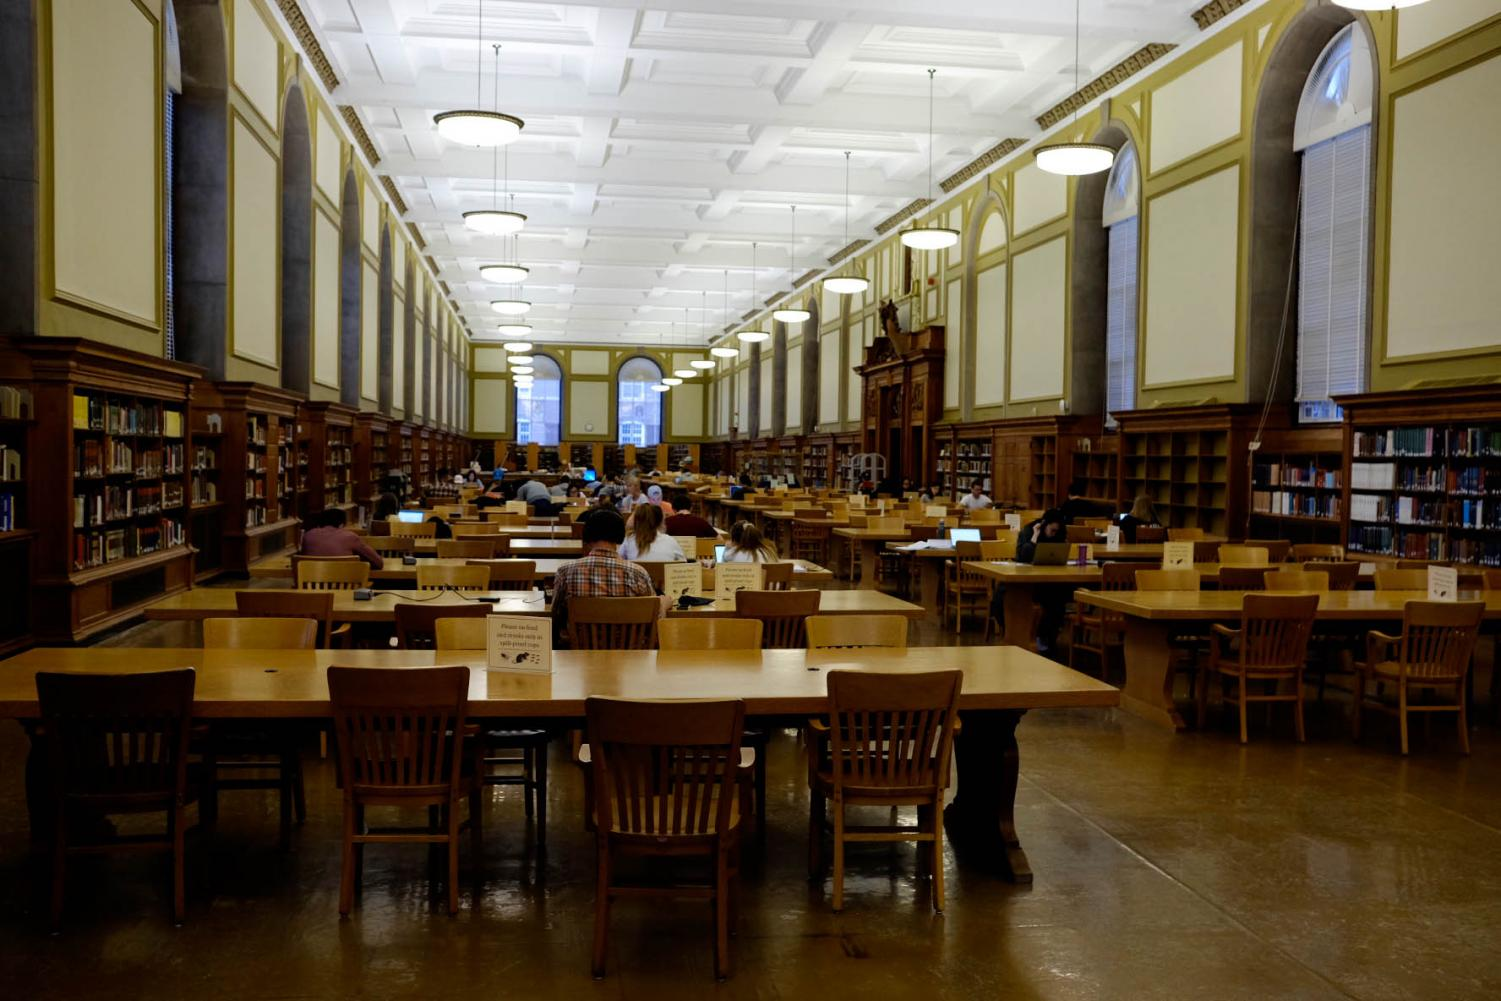 The University has plans to add a modern touch to the Main Library, including adding a Media Commons modeled after the one currently in the Undergraduate Library. The project is scheduled to be completed by 2024.